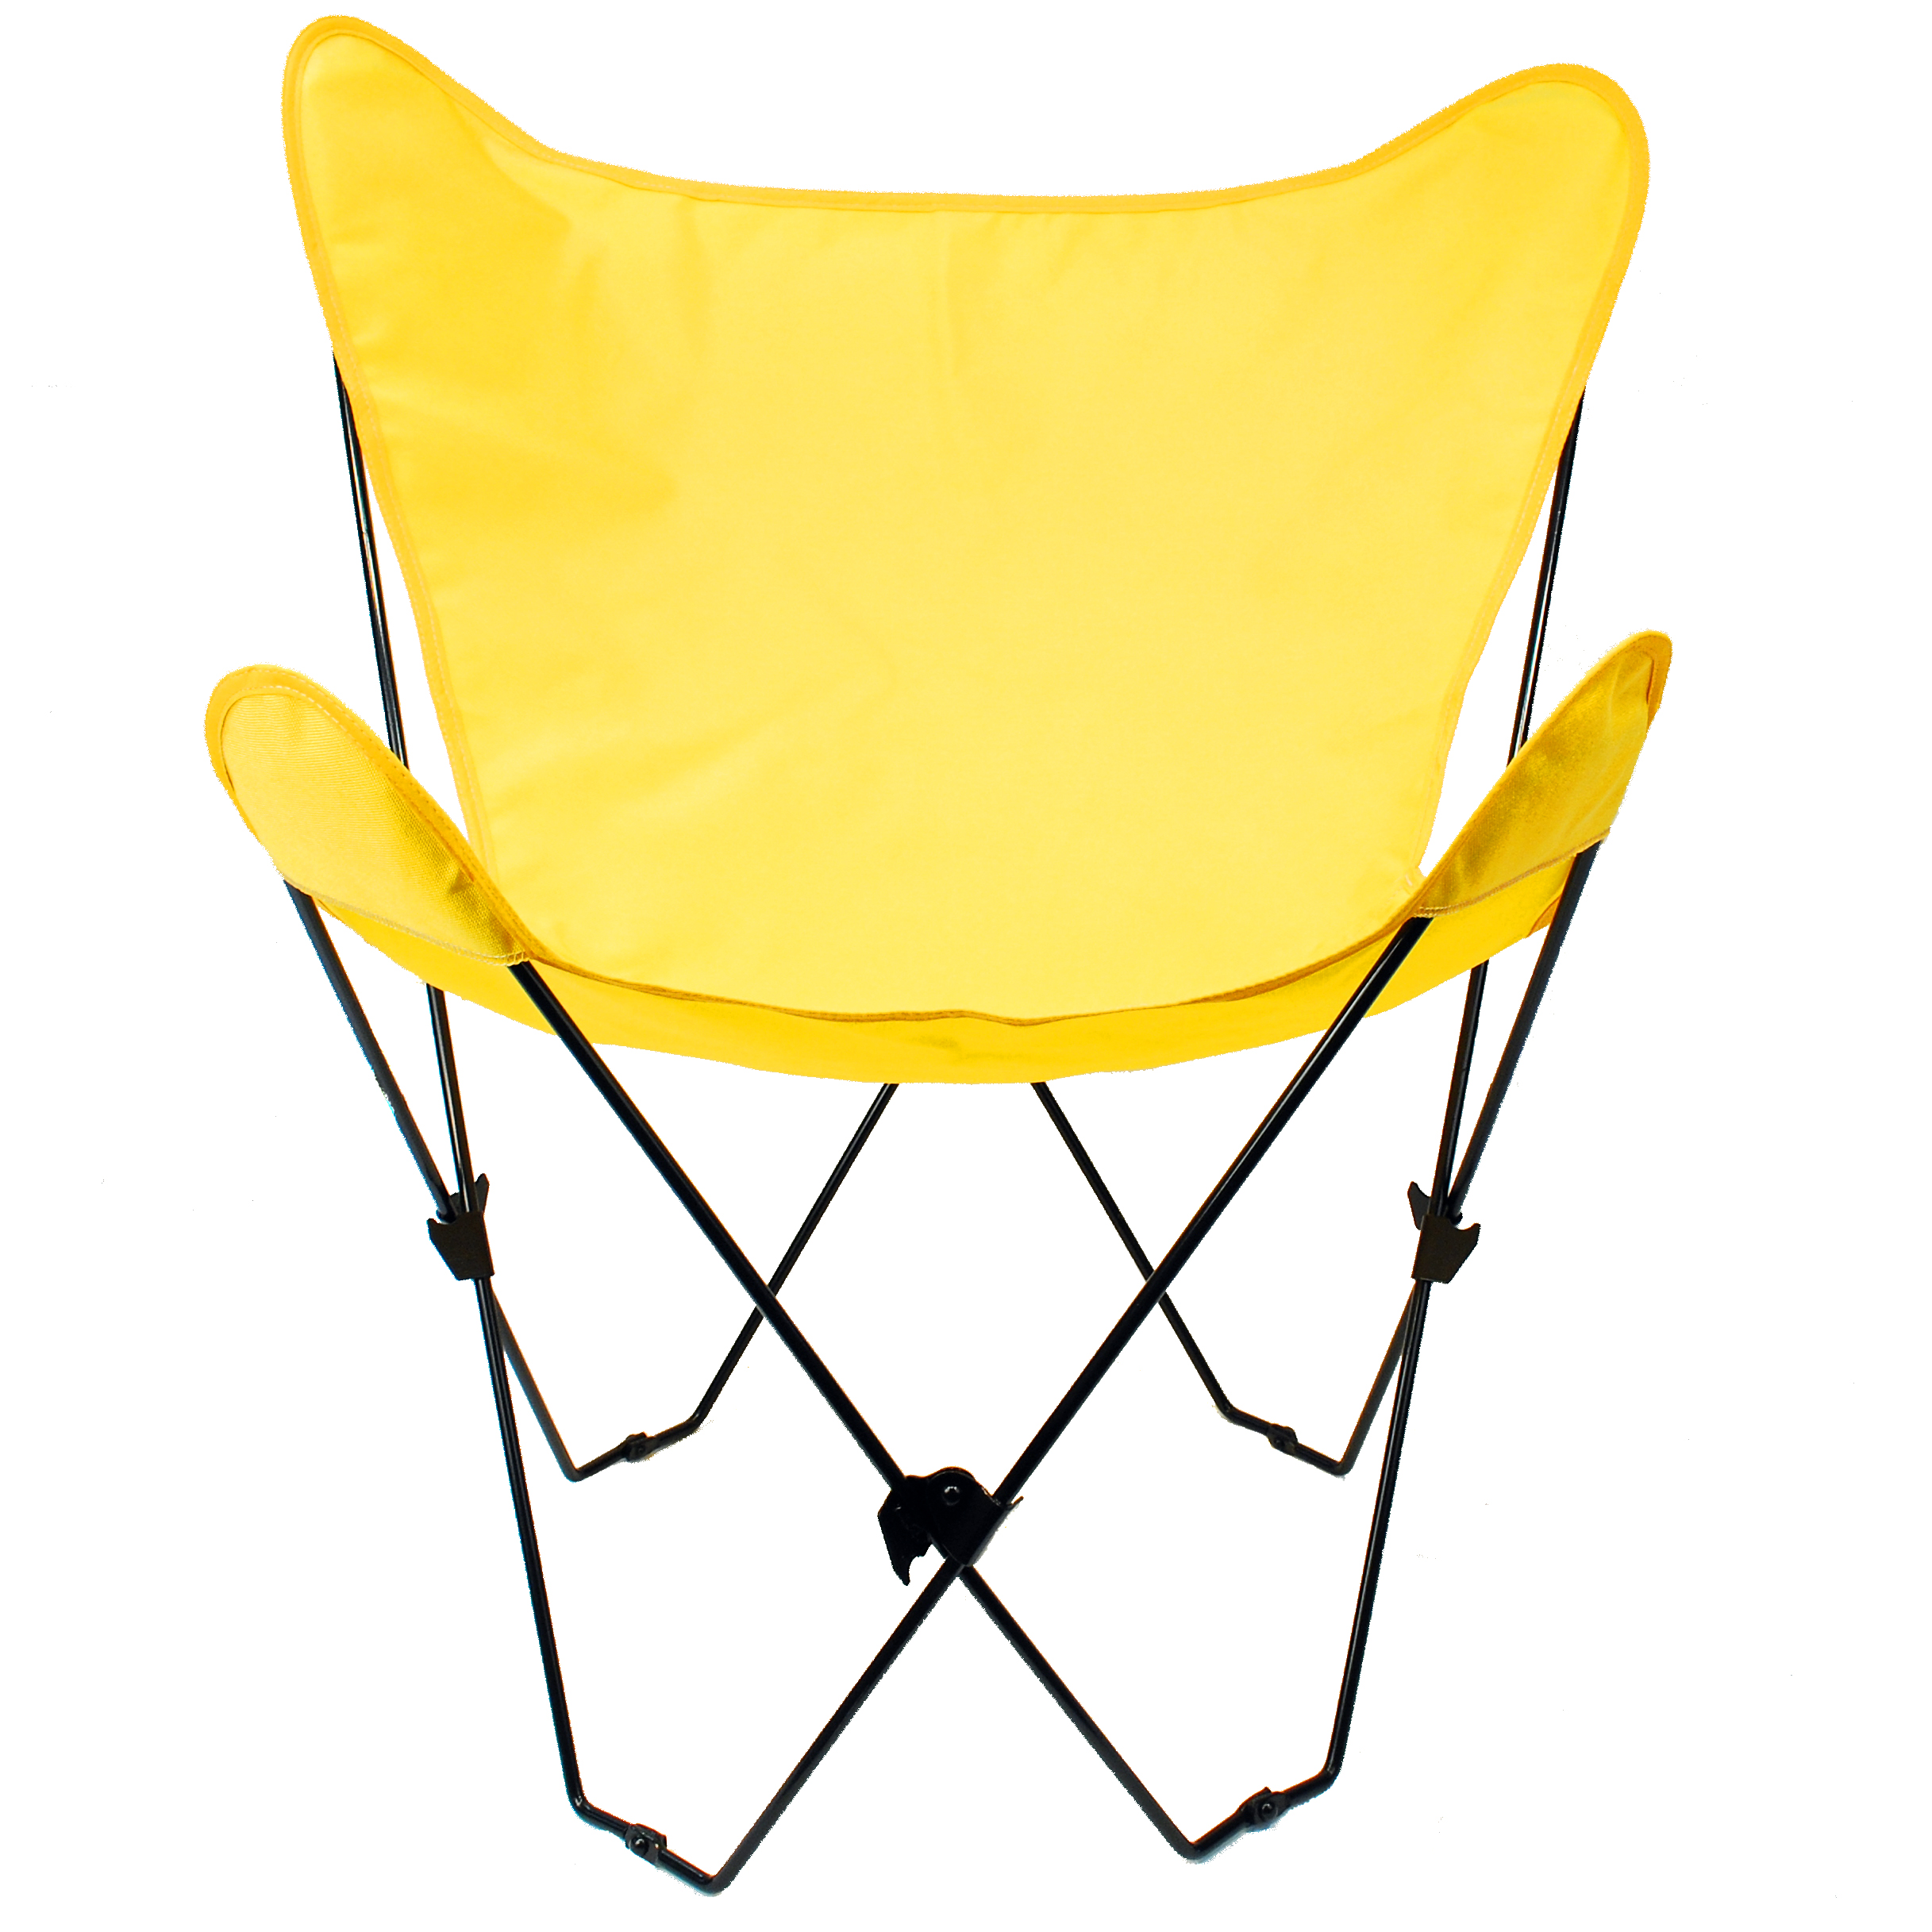 Butterfly Chair and Cover Combination With Black Frame, Sunny Gold